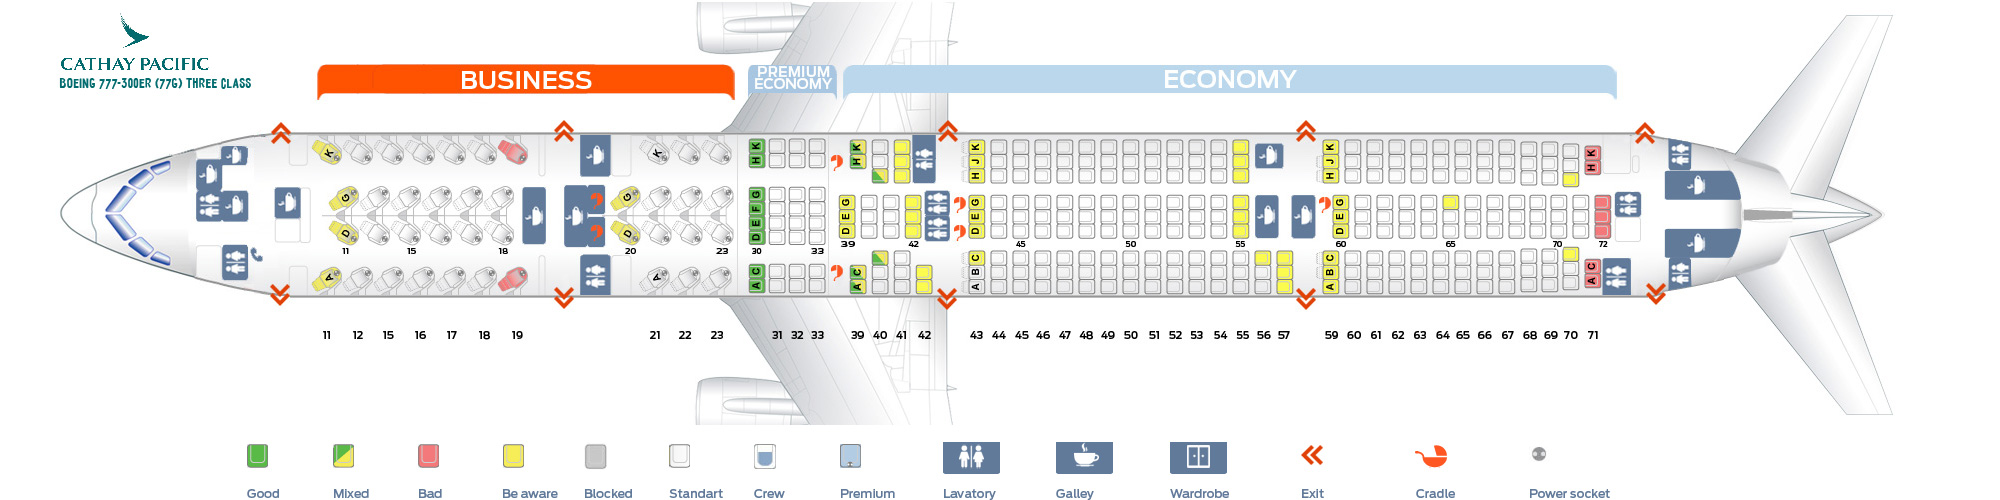 Seat Map And Seating Chart Boeing 777 300er Cathay Pacific 77g Three Cl